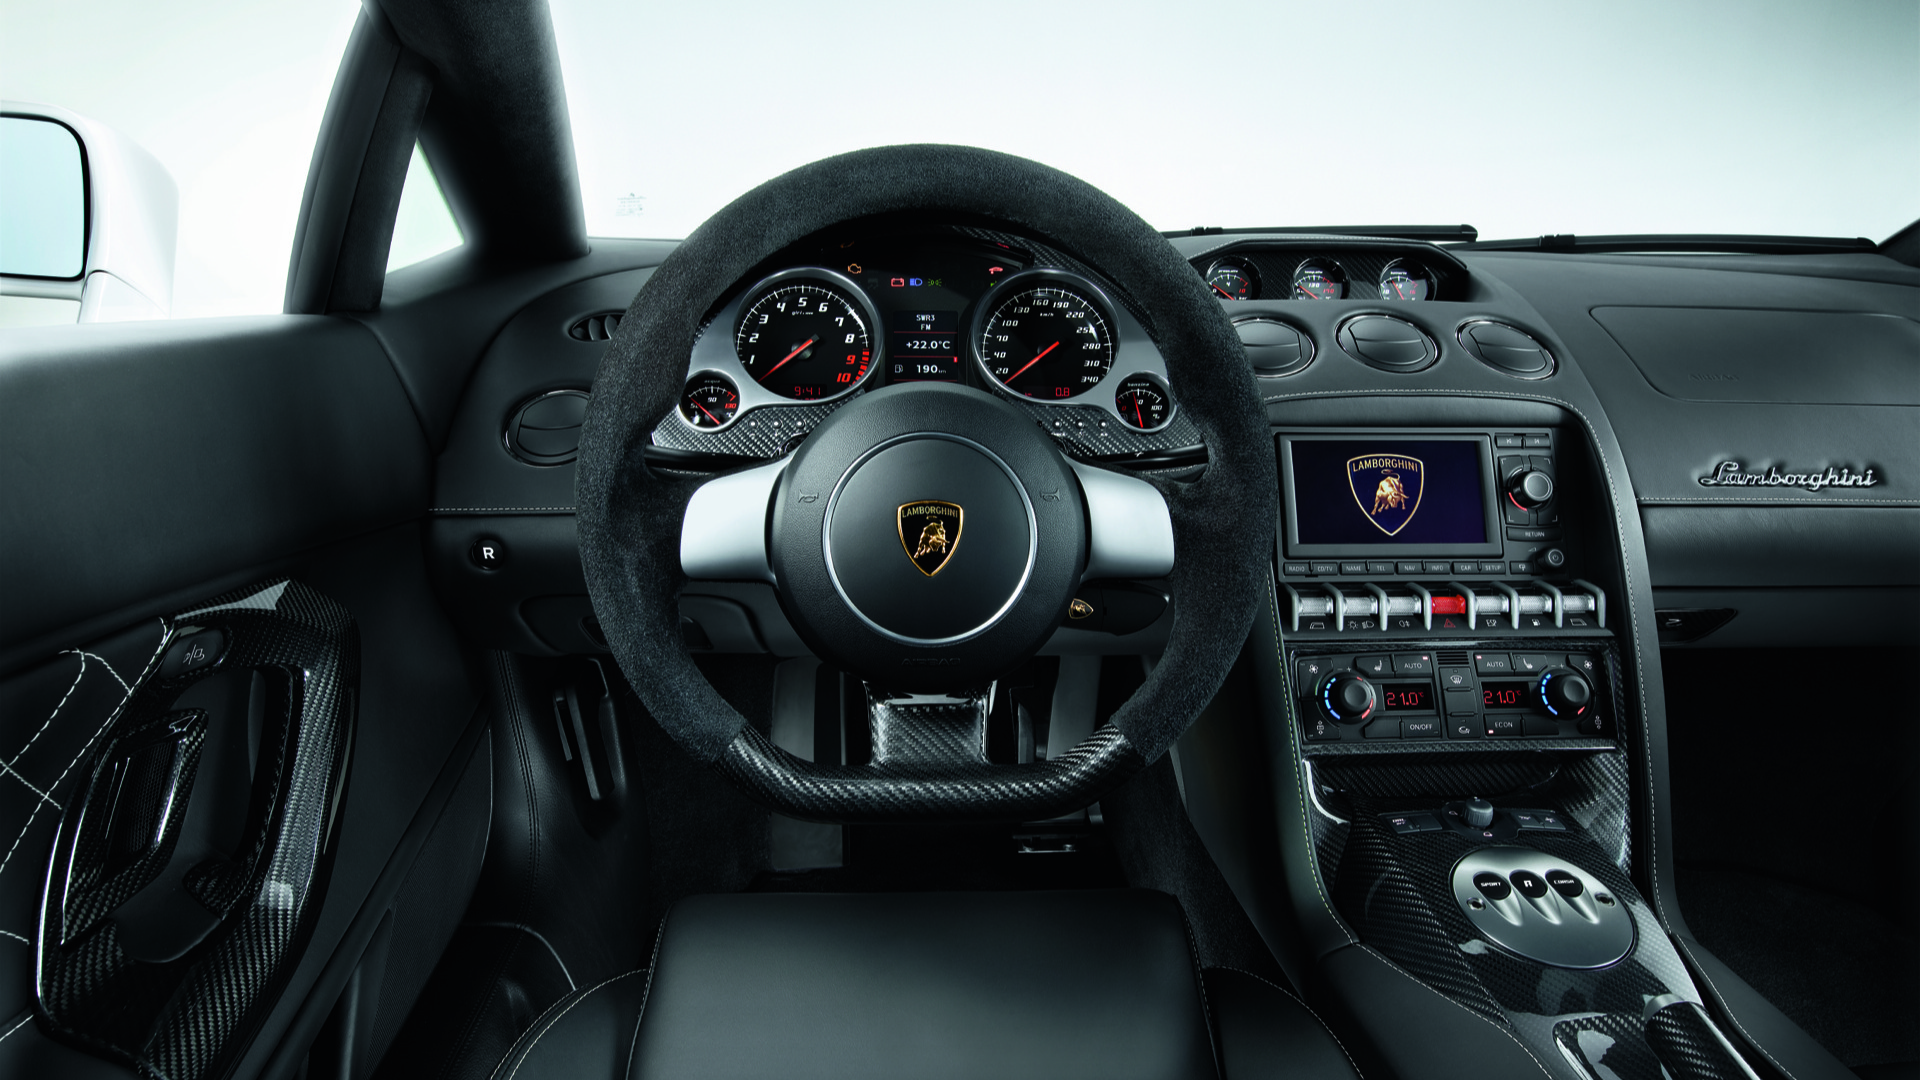 Lamborghini Gallardo 2013 Lp 560 4 Interior Car Photos Overdrive